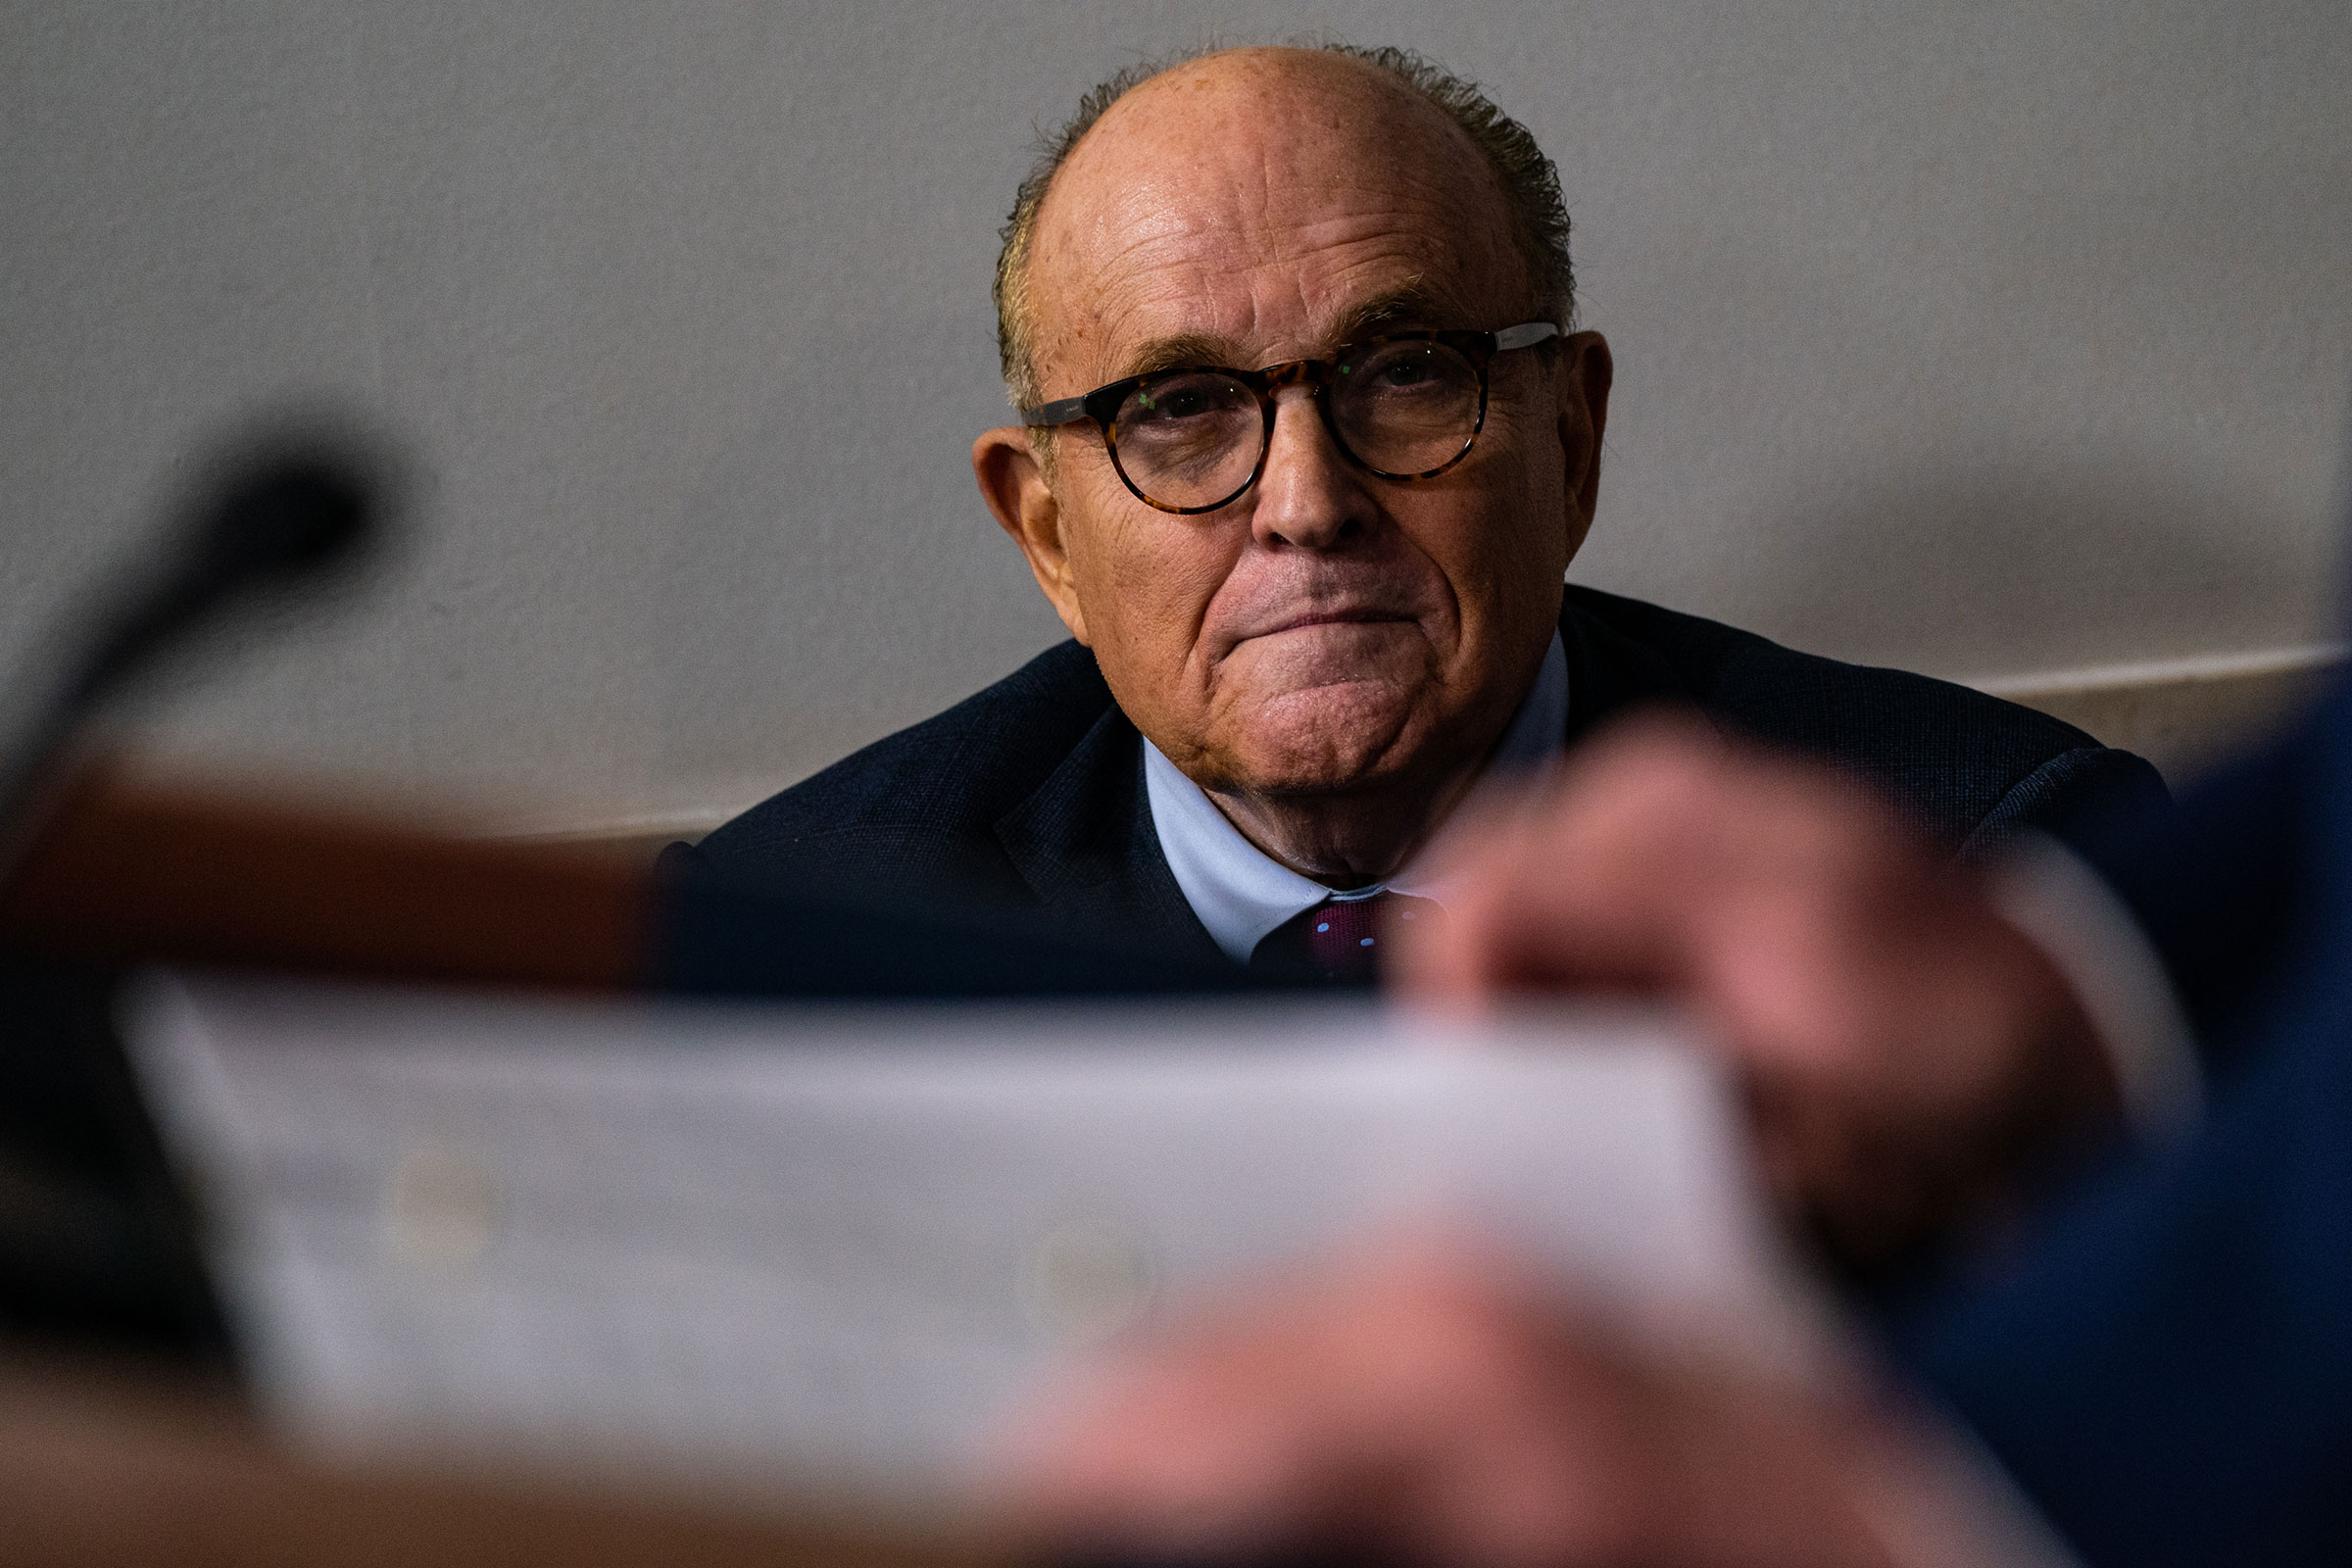 Rudy Giuliani listens as President Trump speaks during a news briefing at the White House in Washington, D.C., on Sept. 27, 2020.